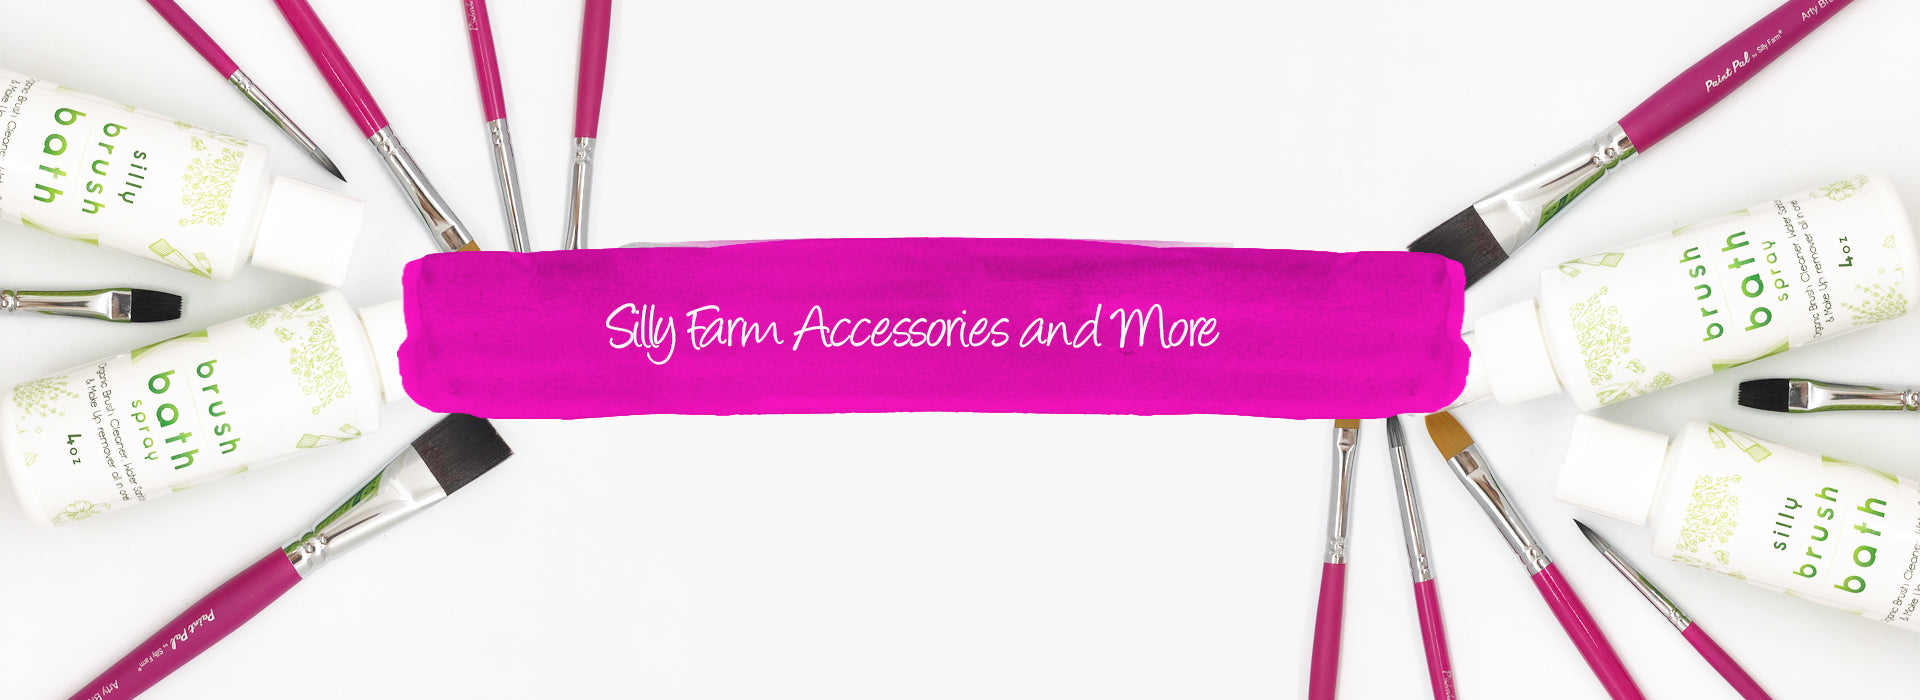 Silly Farm Accessories & More